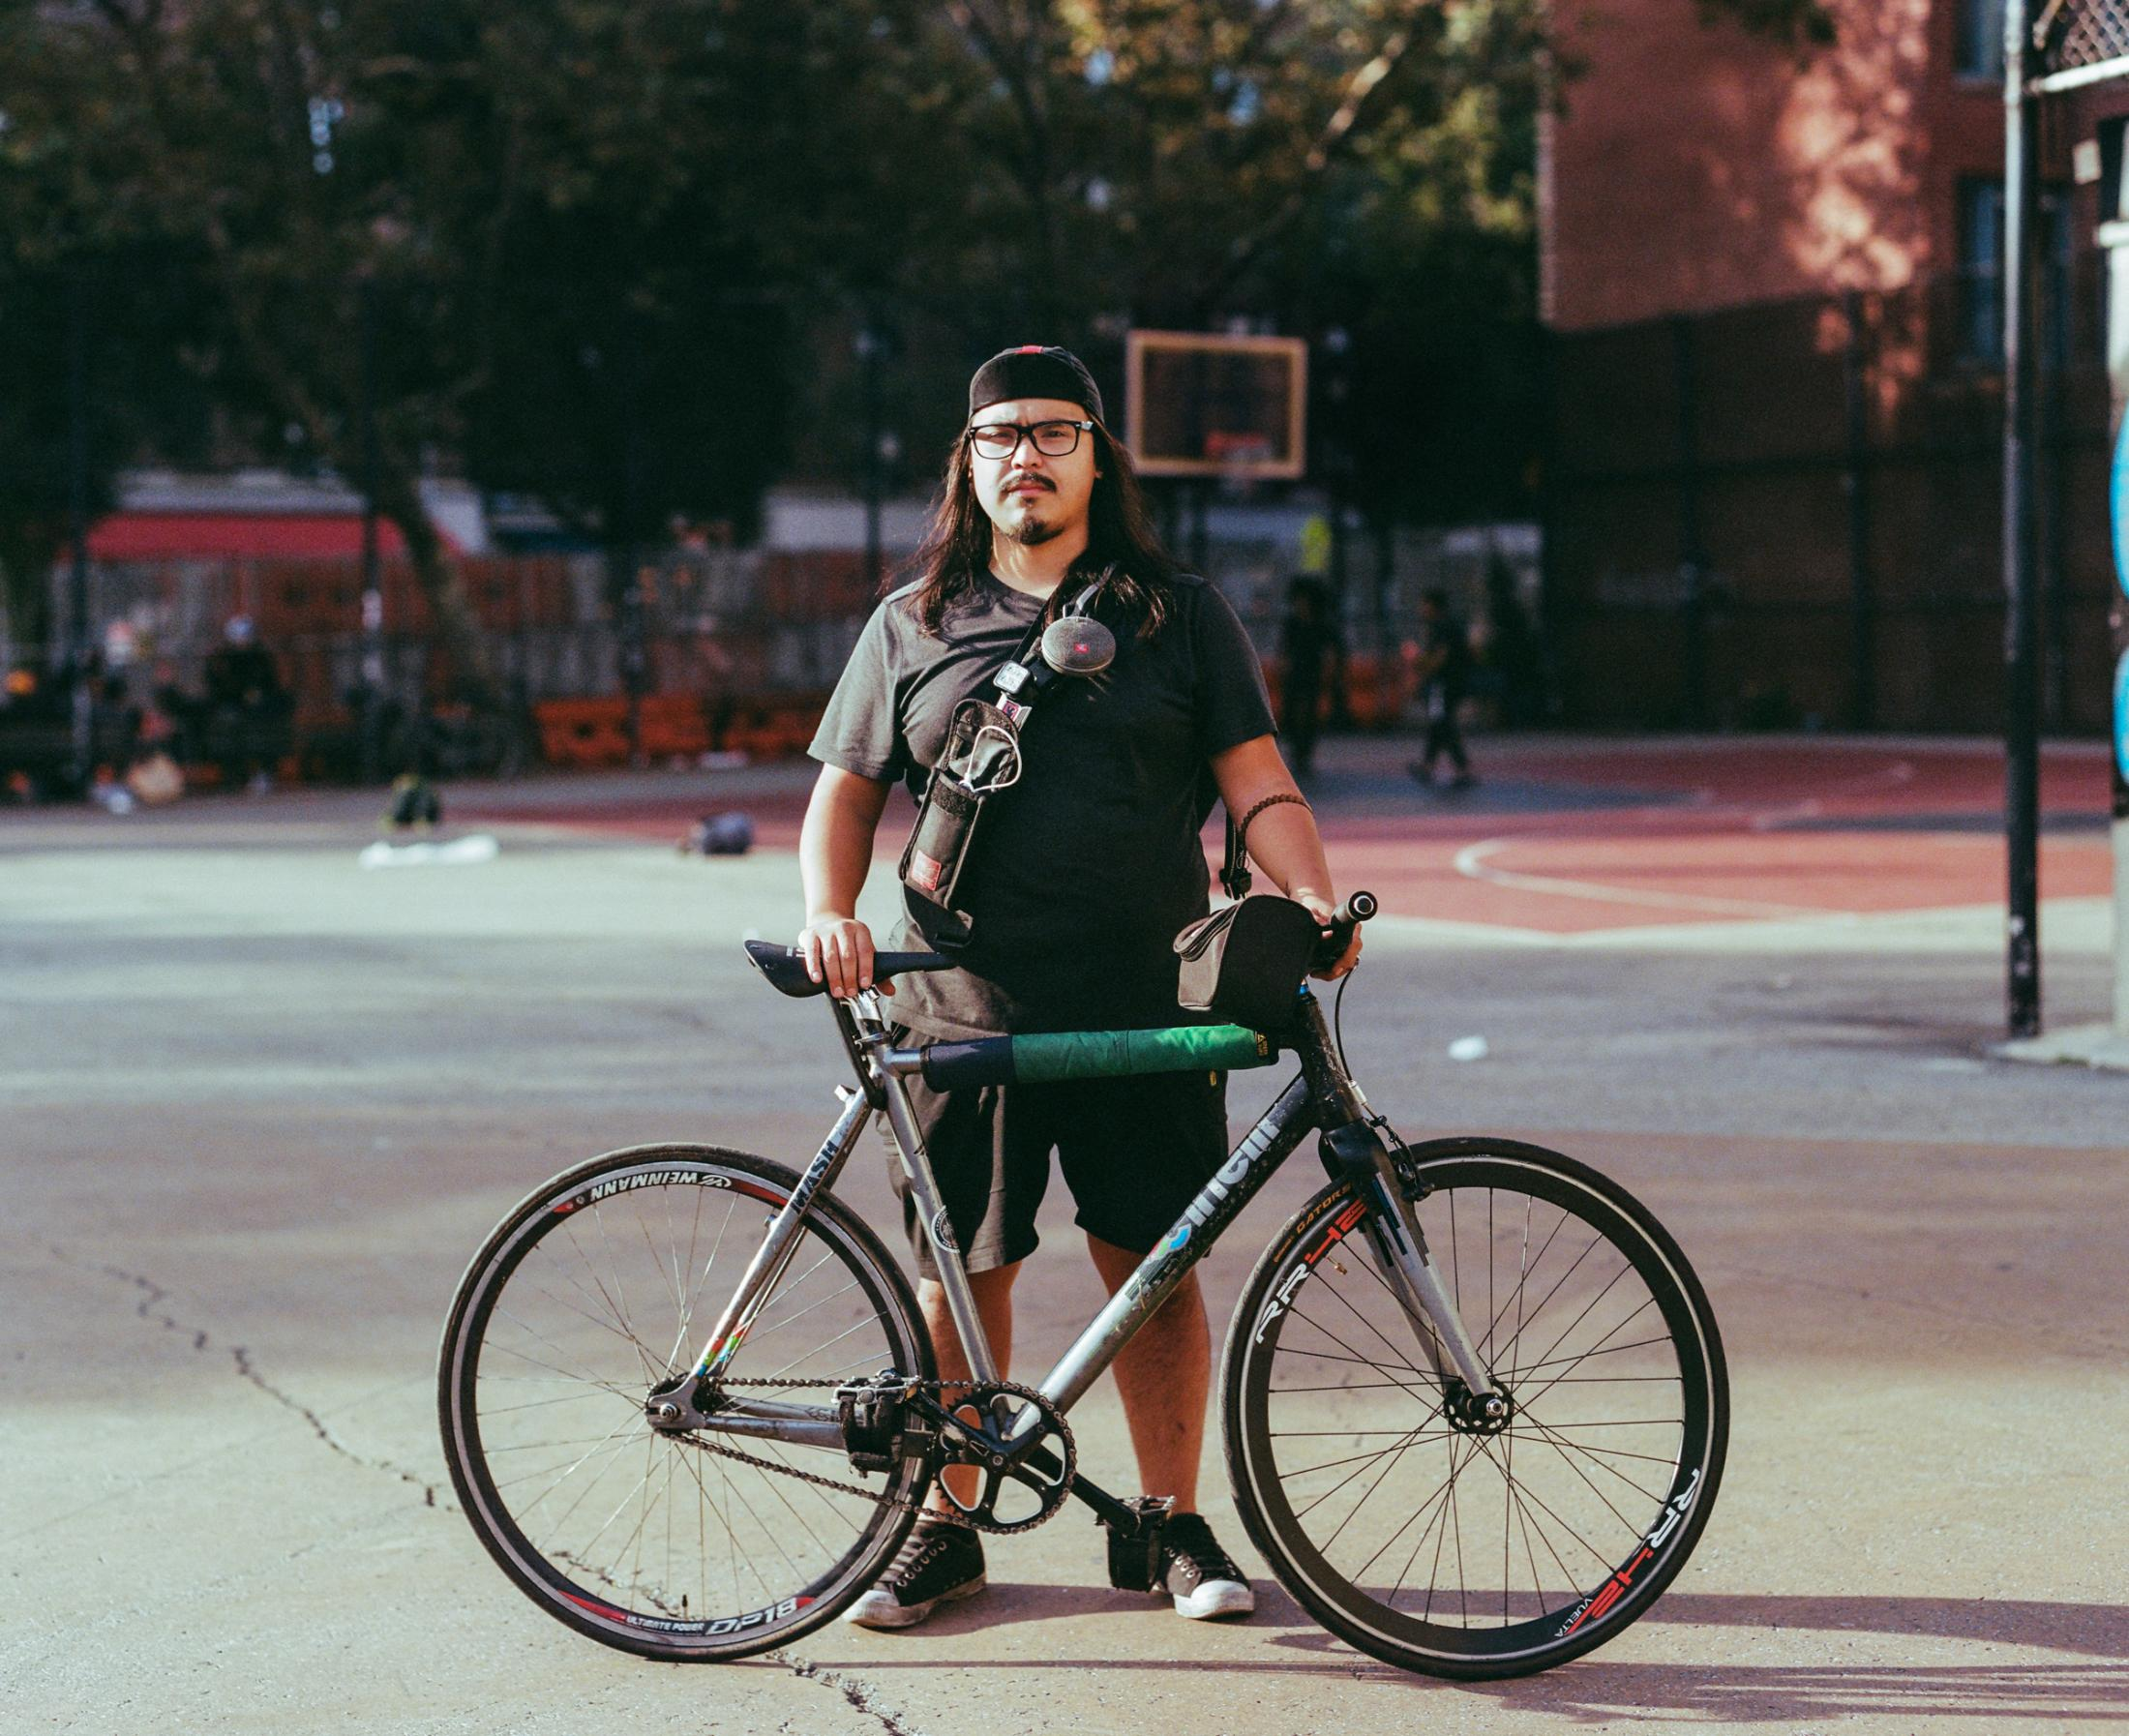 Allen Typpo on September 27, 2019 in NYC. Photo essay on Bike Messengers.